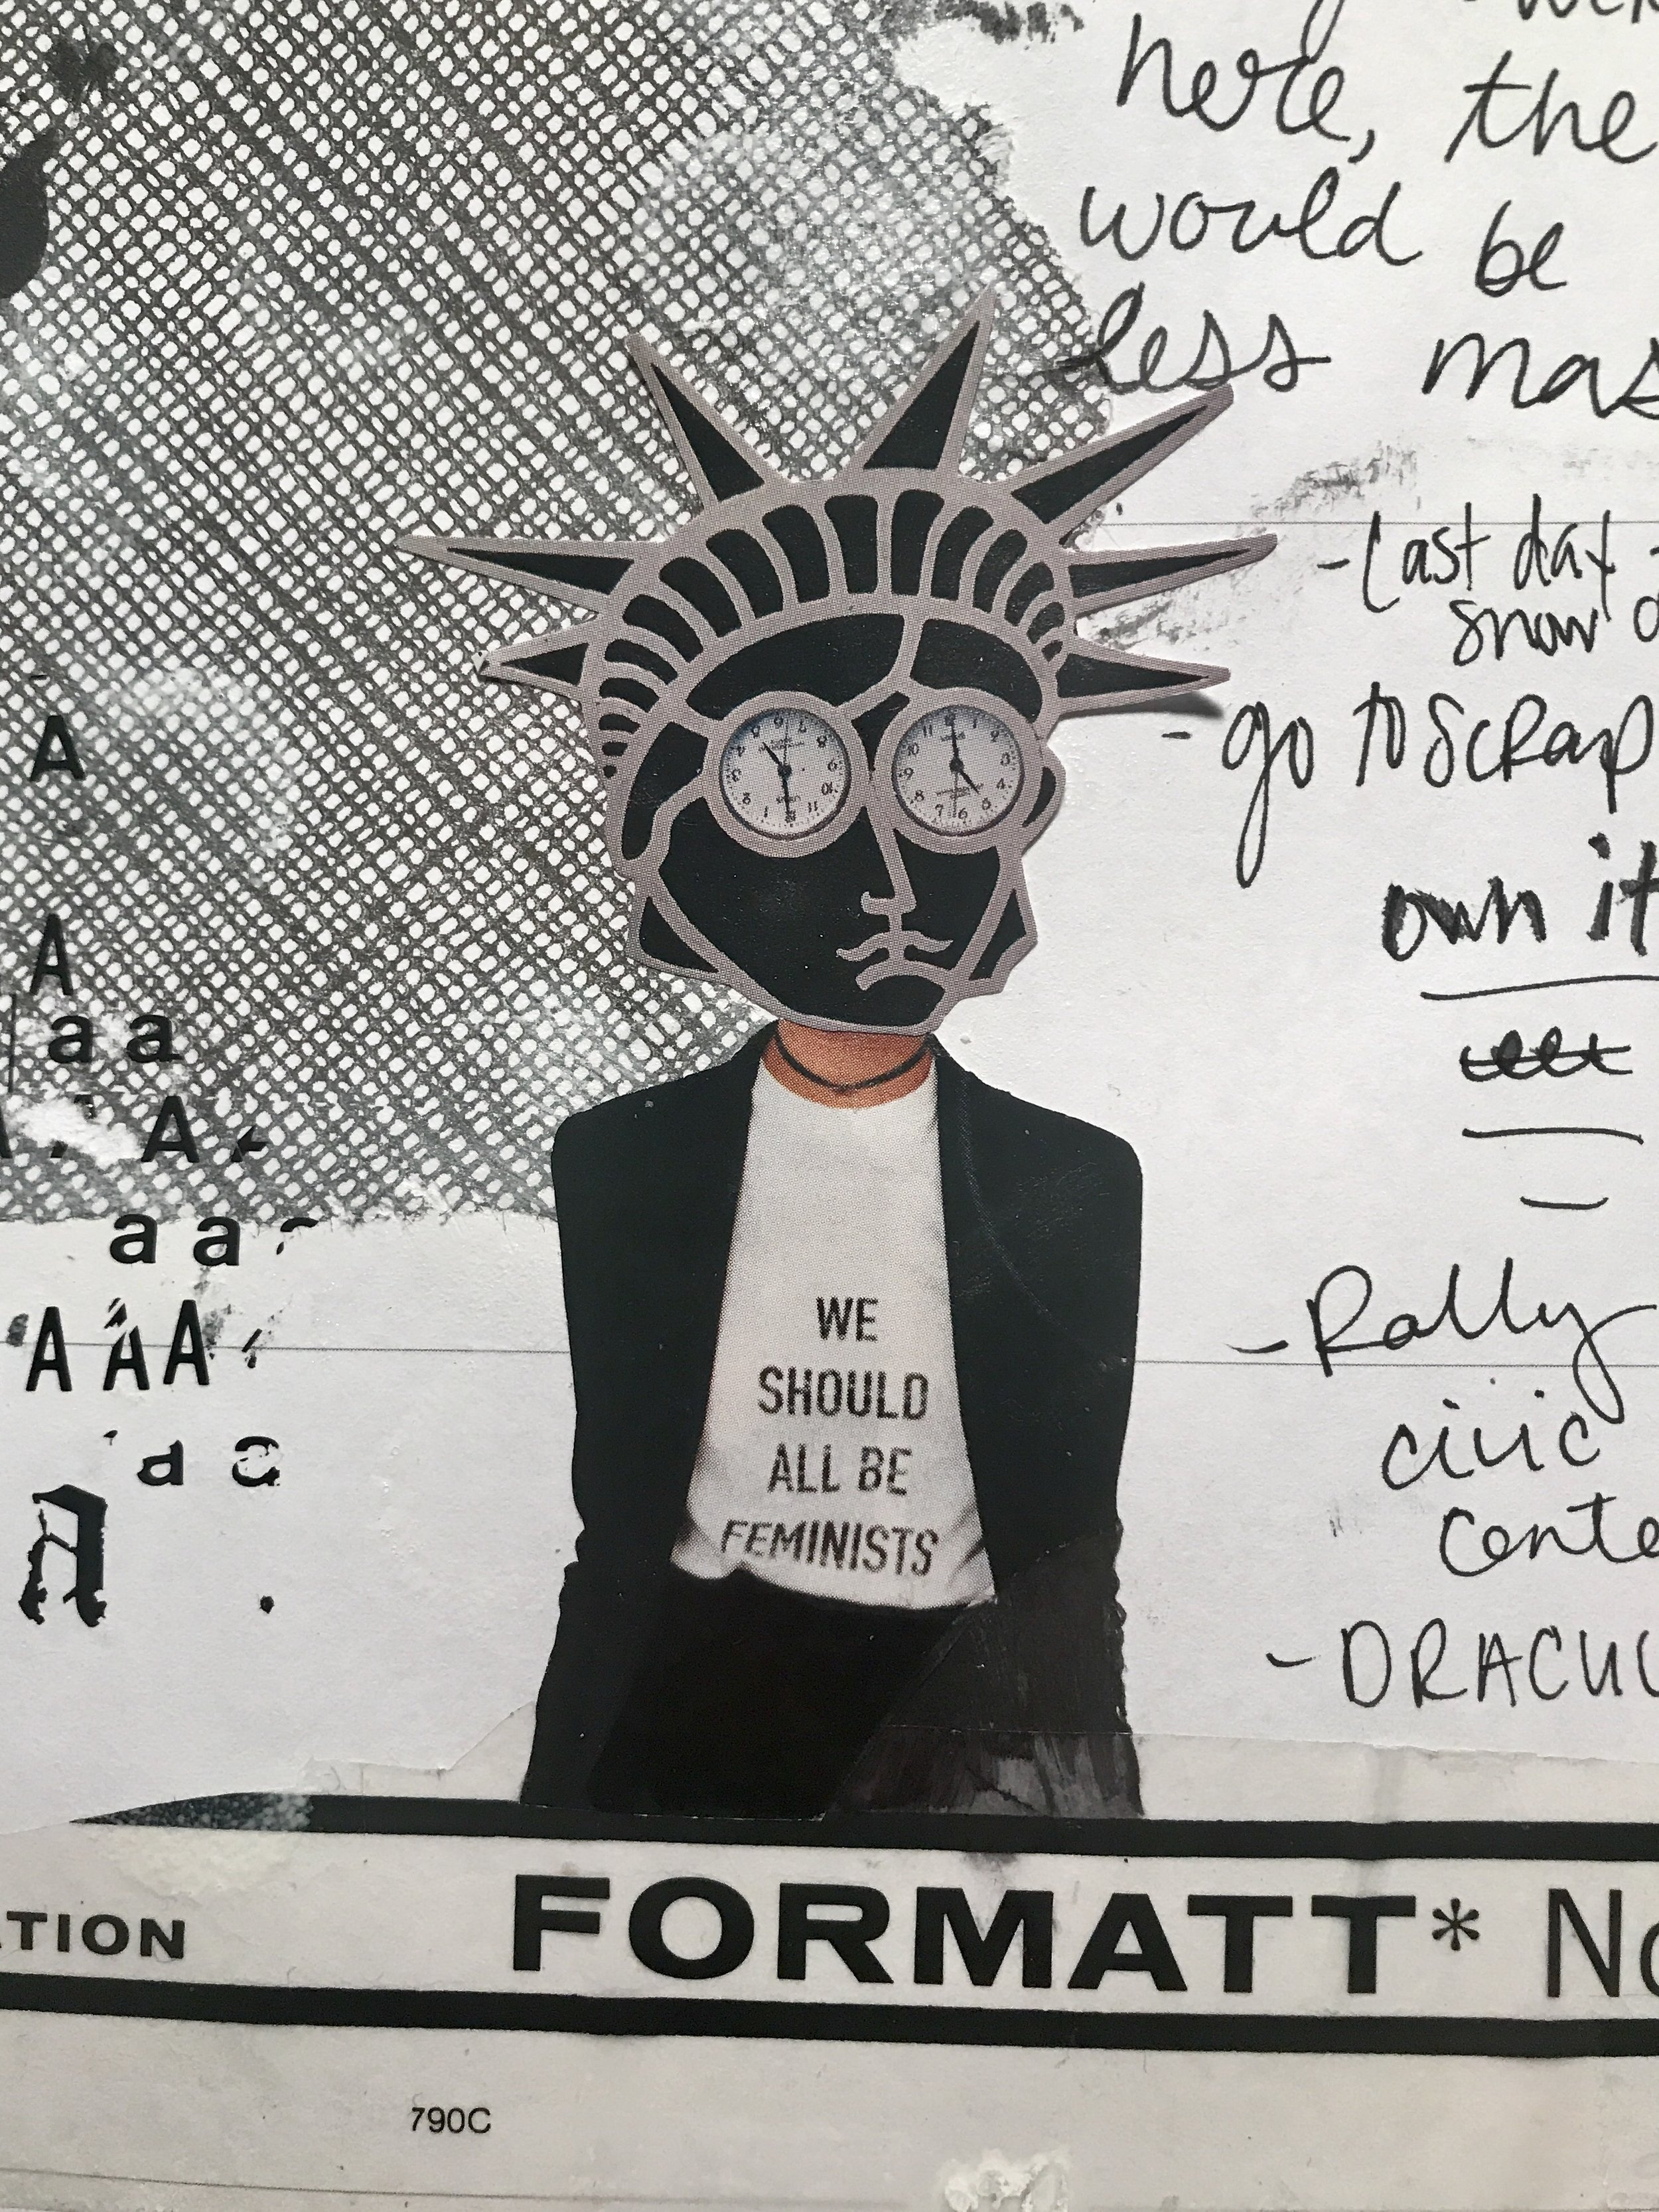 Feb 2017 journal page w vinyl transfer letters, envelop, magazine pics of a broach worn by Madeleine Albright and a Dior tshirt that costs 840-fucking-dollars WHY